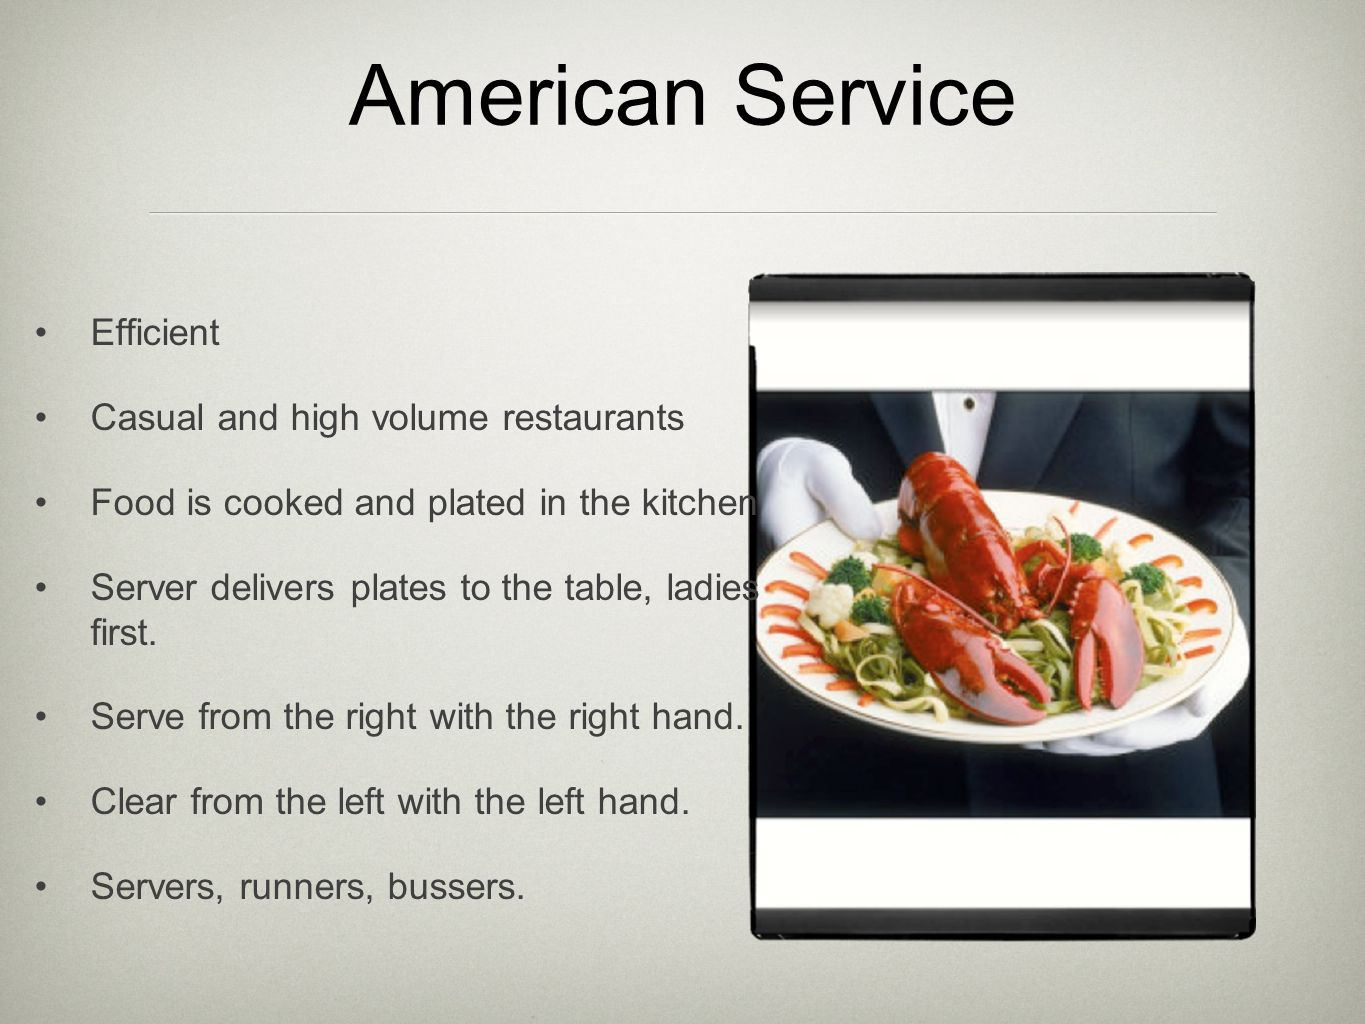 American Service Efficient Casual and high volume restaurants Food is cooked and plated in the kitchen Server delivers plates to the table, ladies first.